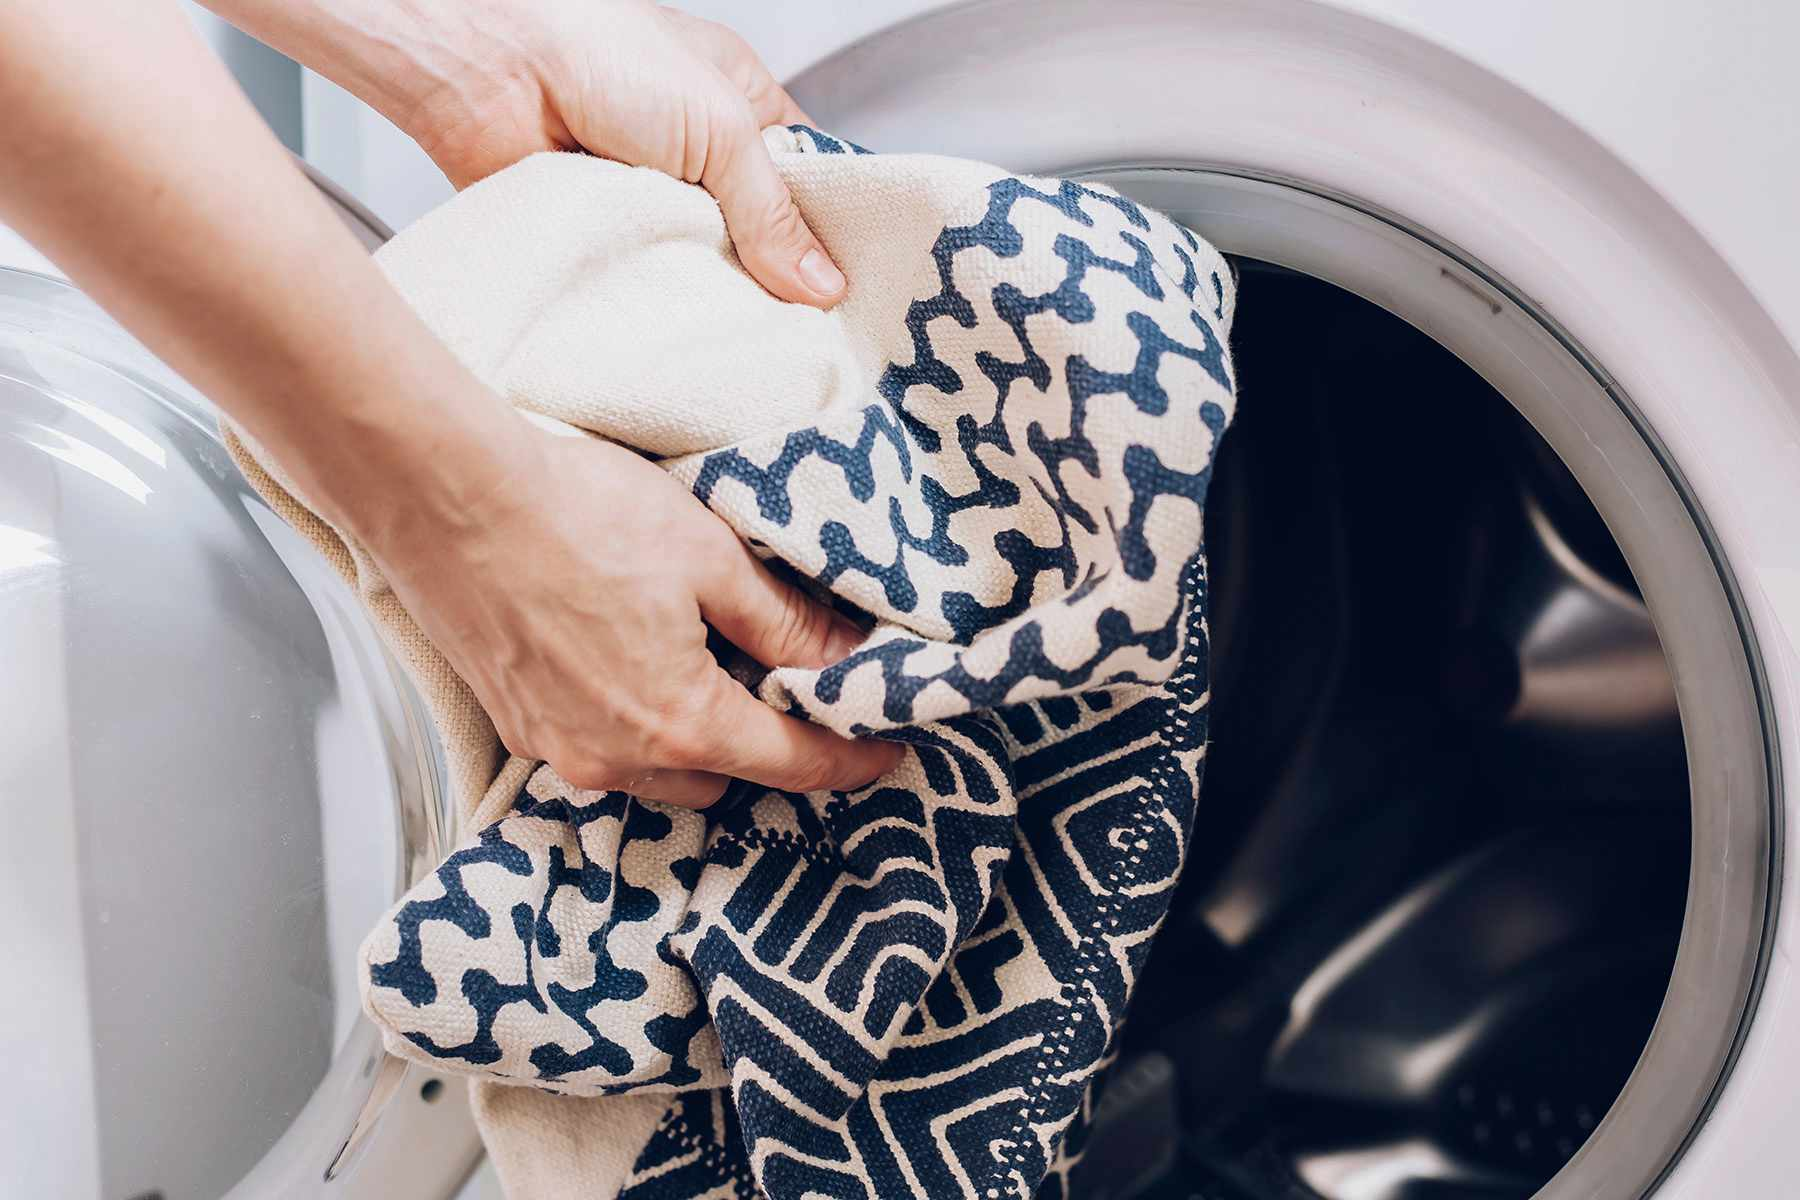 putting washable items into the washer